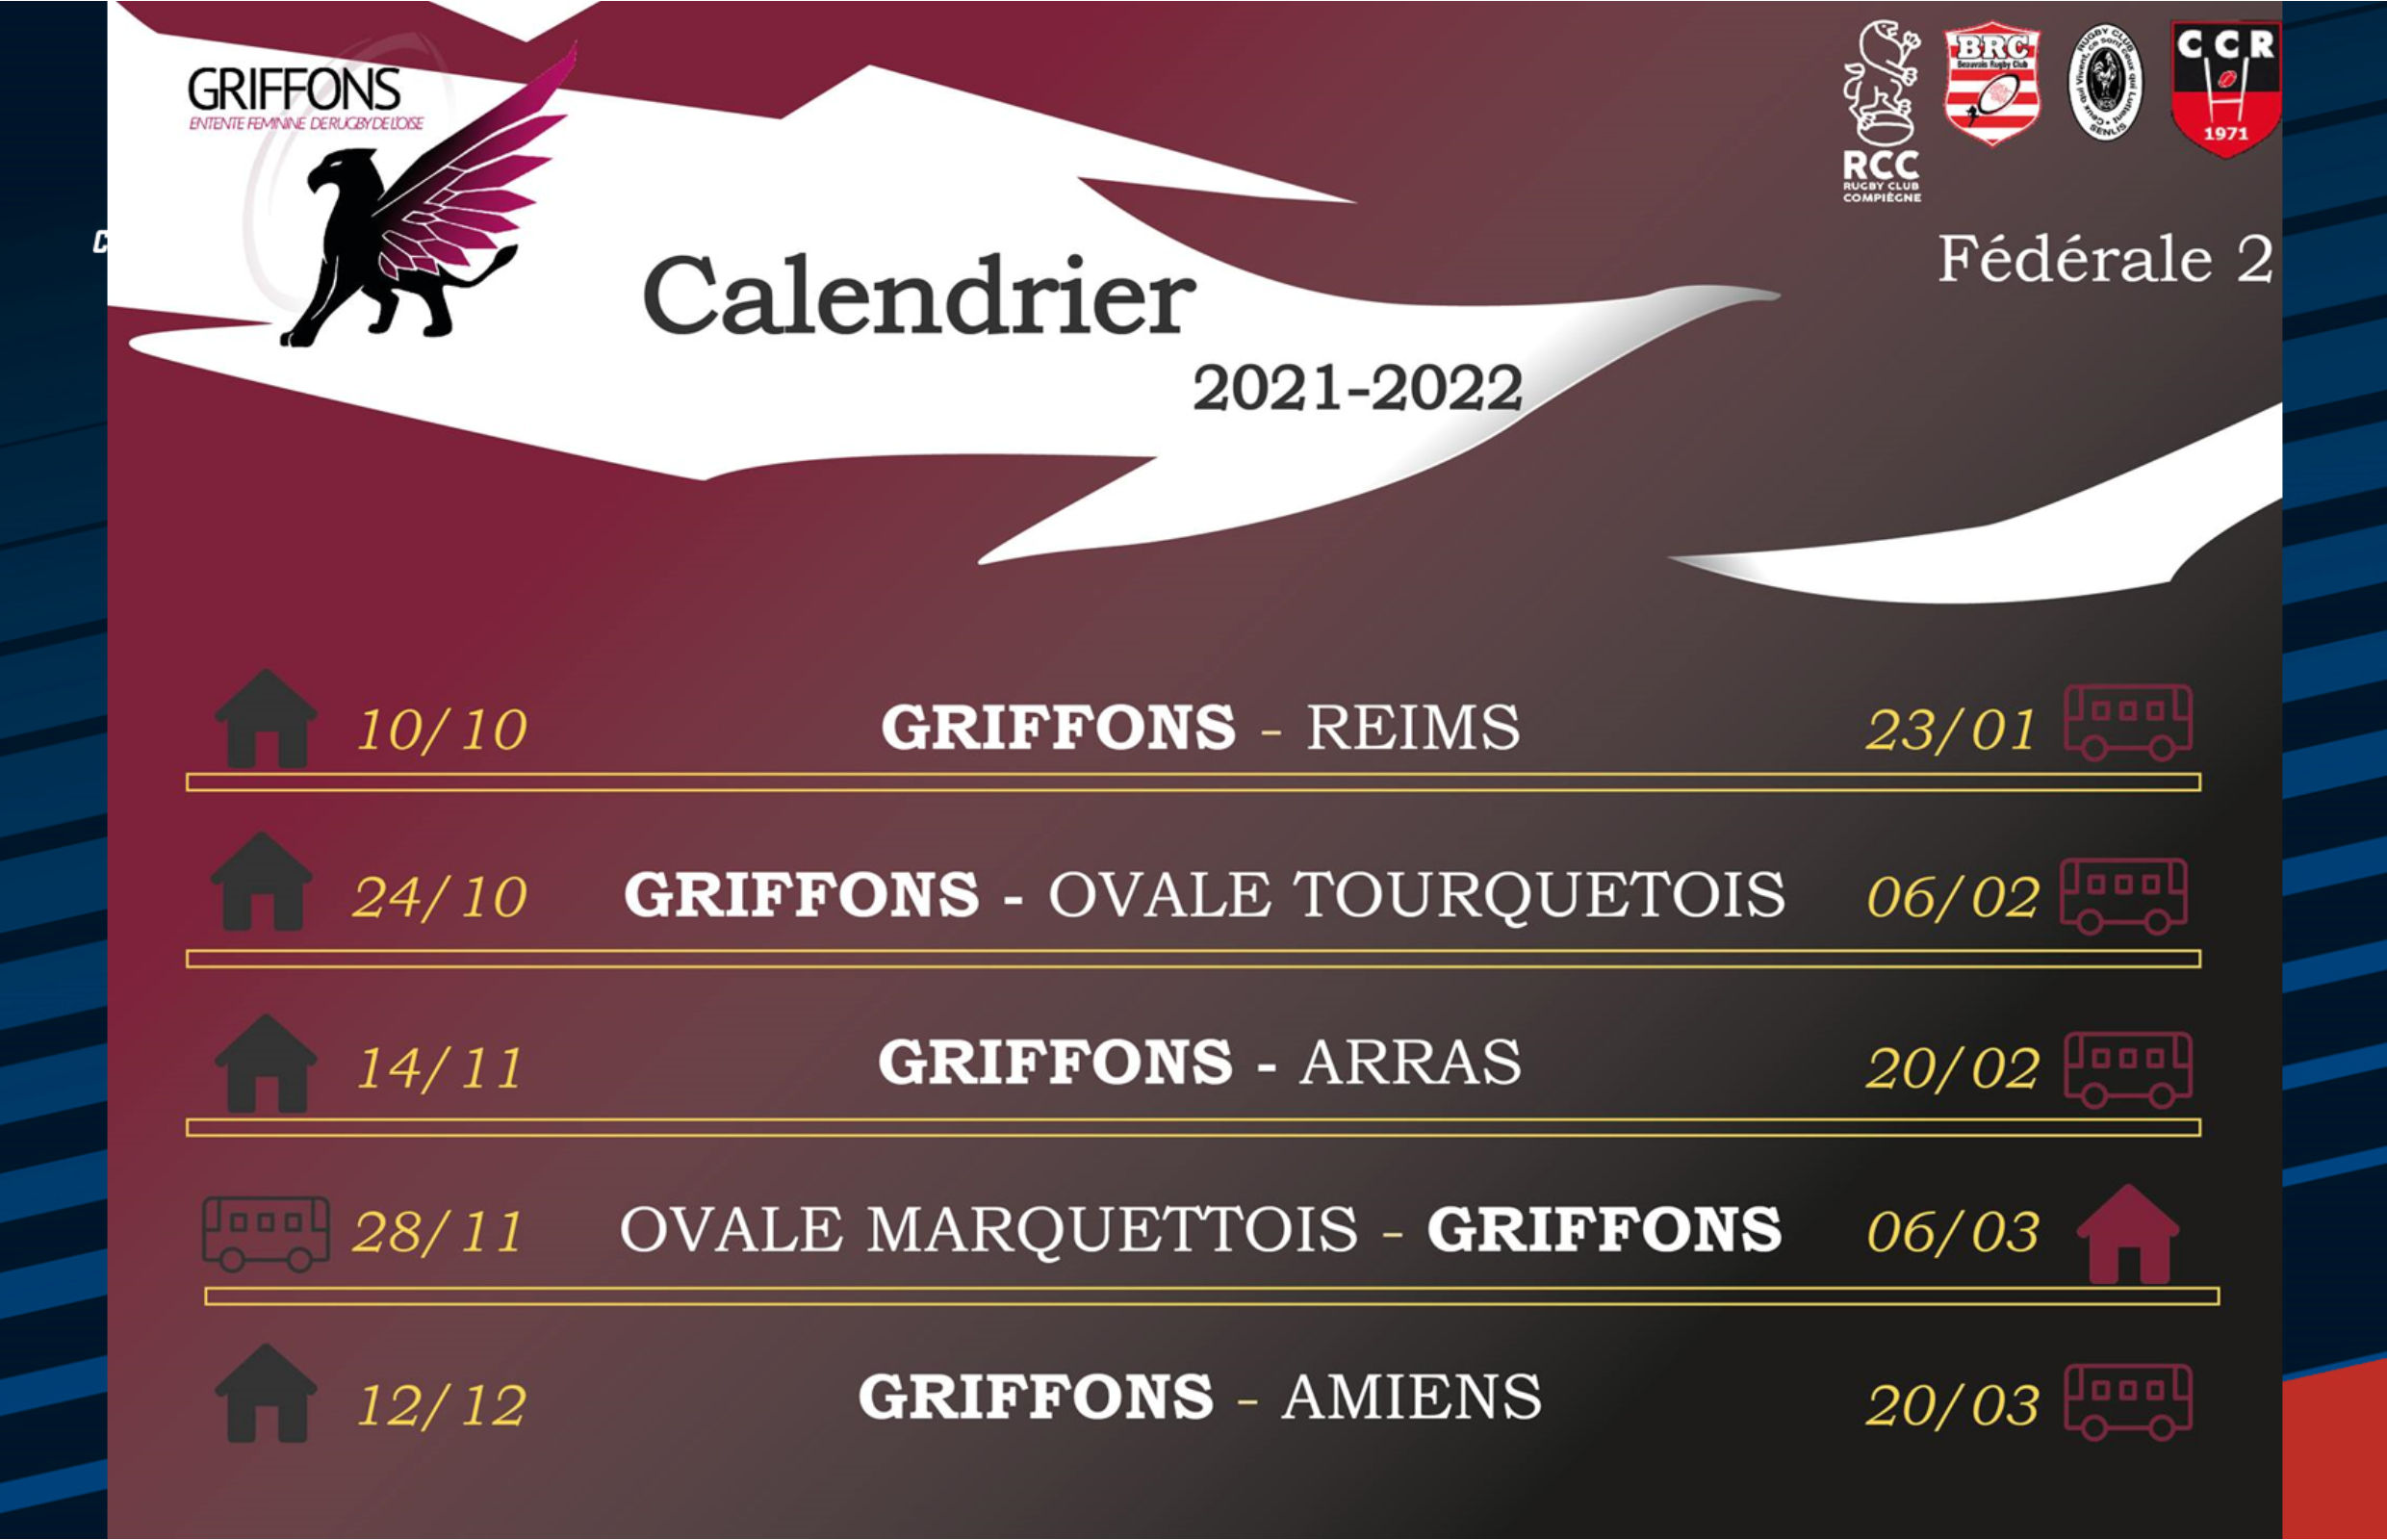 2021_22_Calendrier-Griffons01